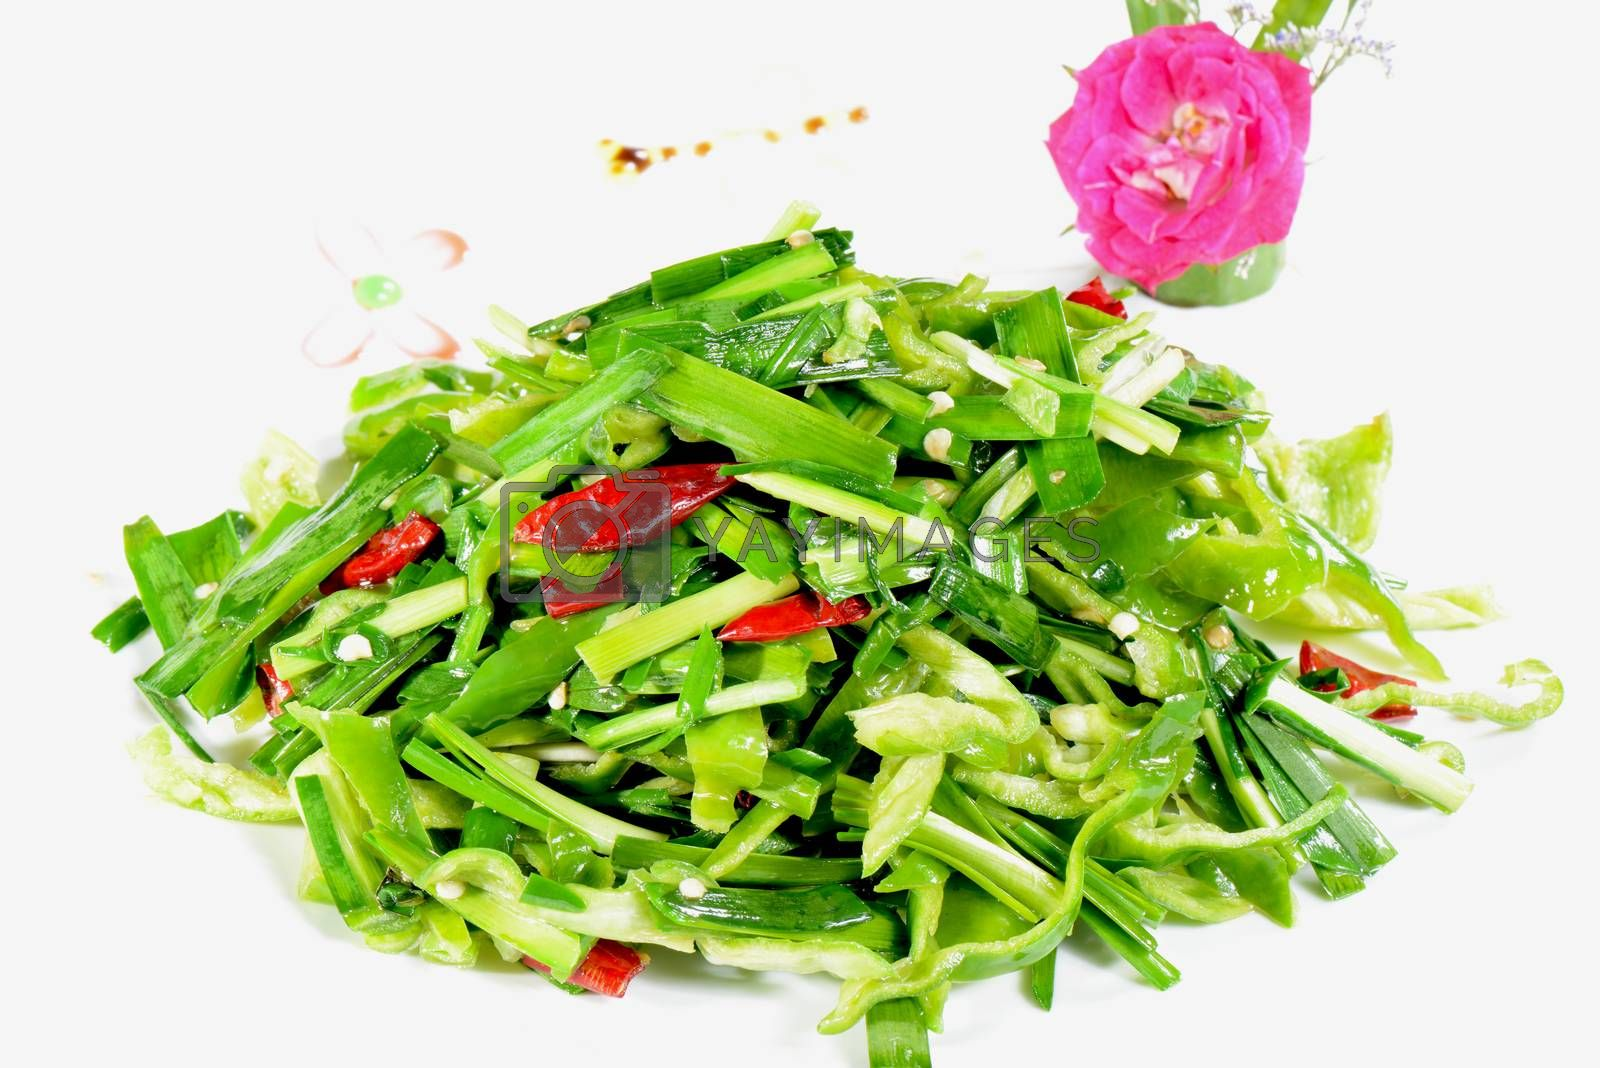 Royalty free image of Chinese Food: Fried leek vegetable by bbbar